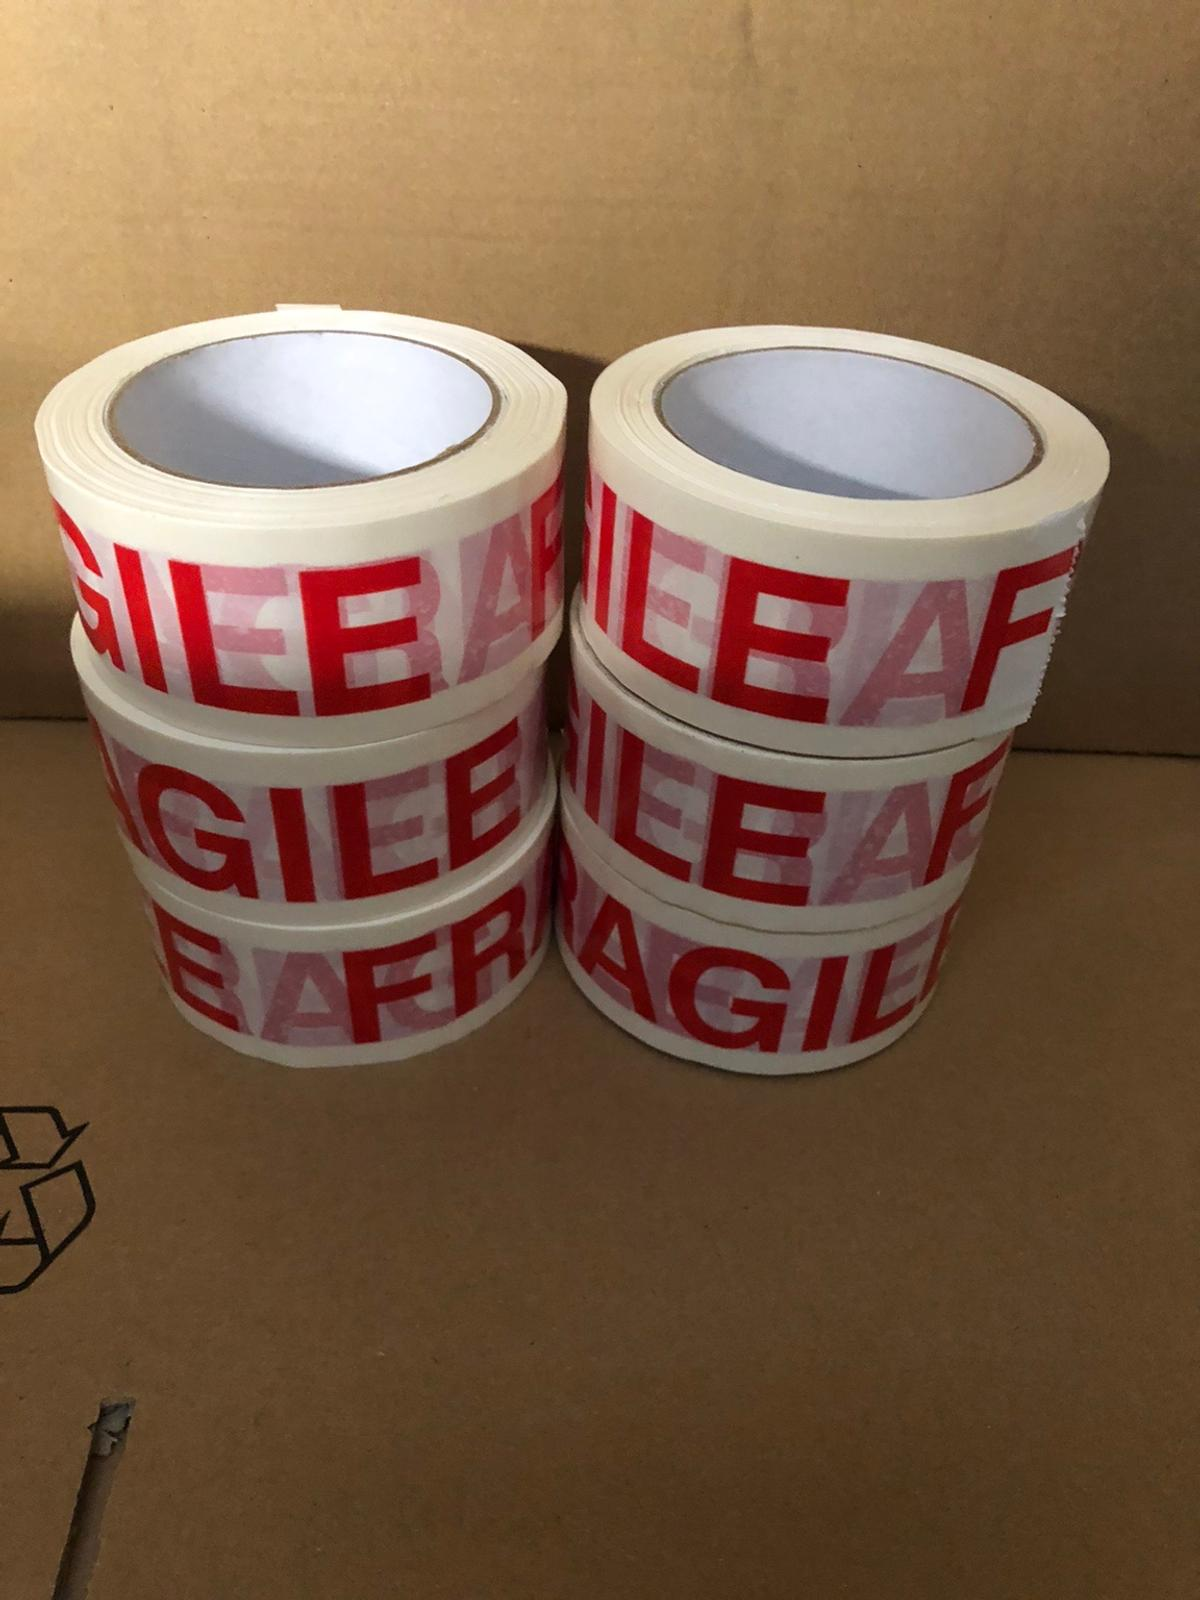 Fragile tape 1 roll £1 6 rolls £5  1 box (36rolls) £25  1 roll = 48mm x 66mt  Can deliver  Message for details